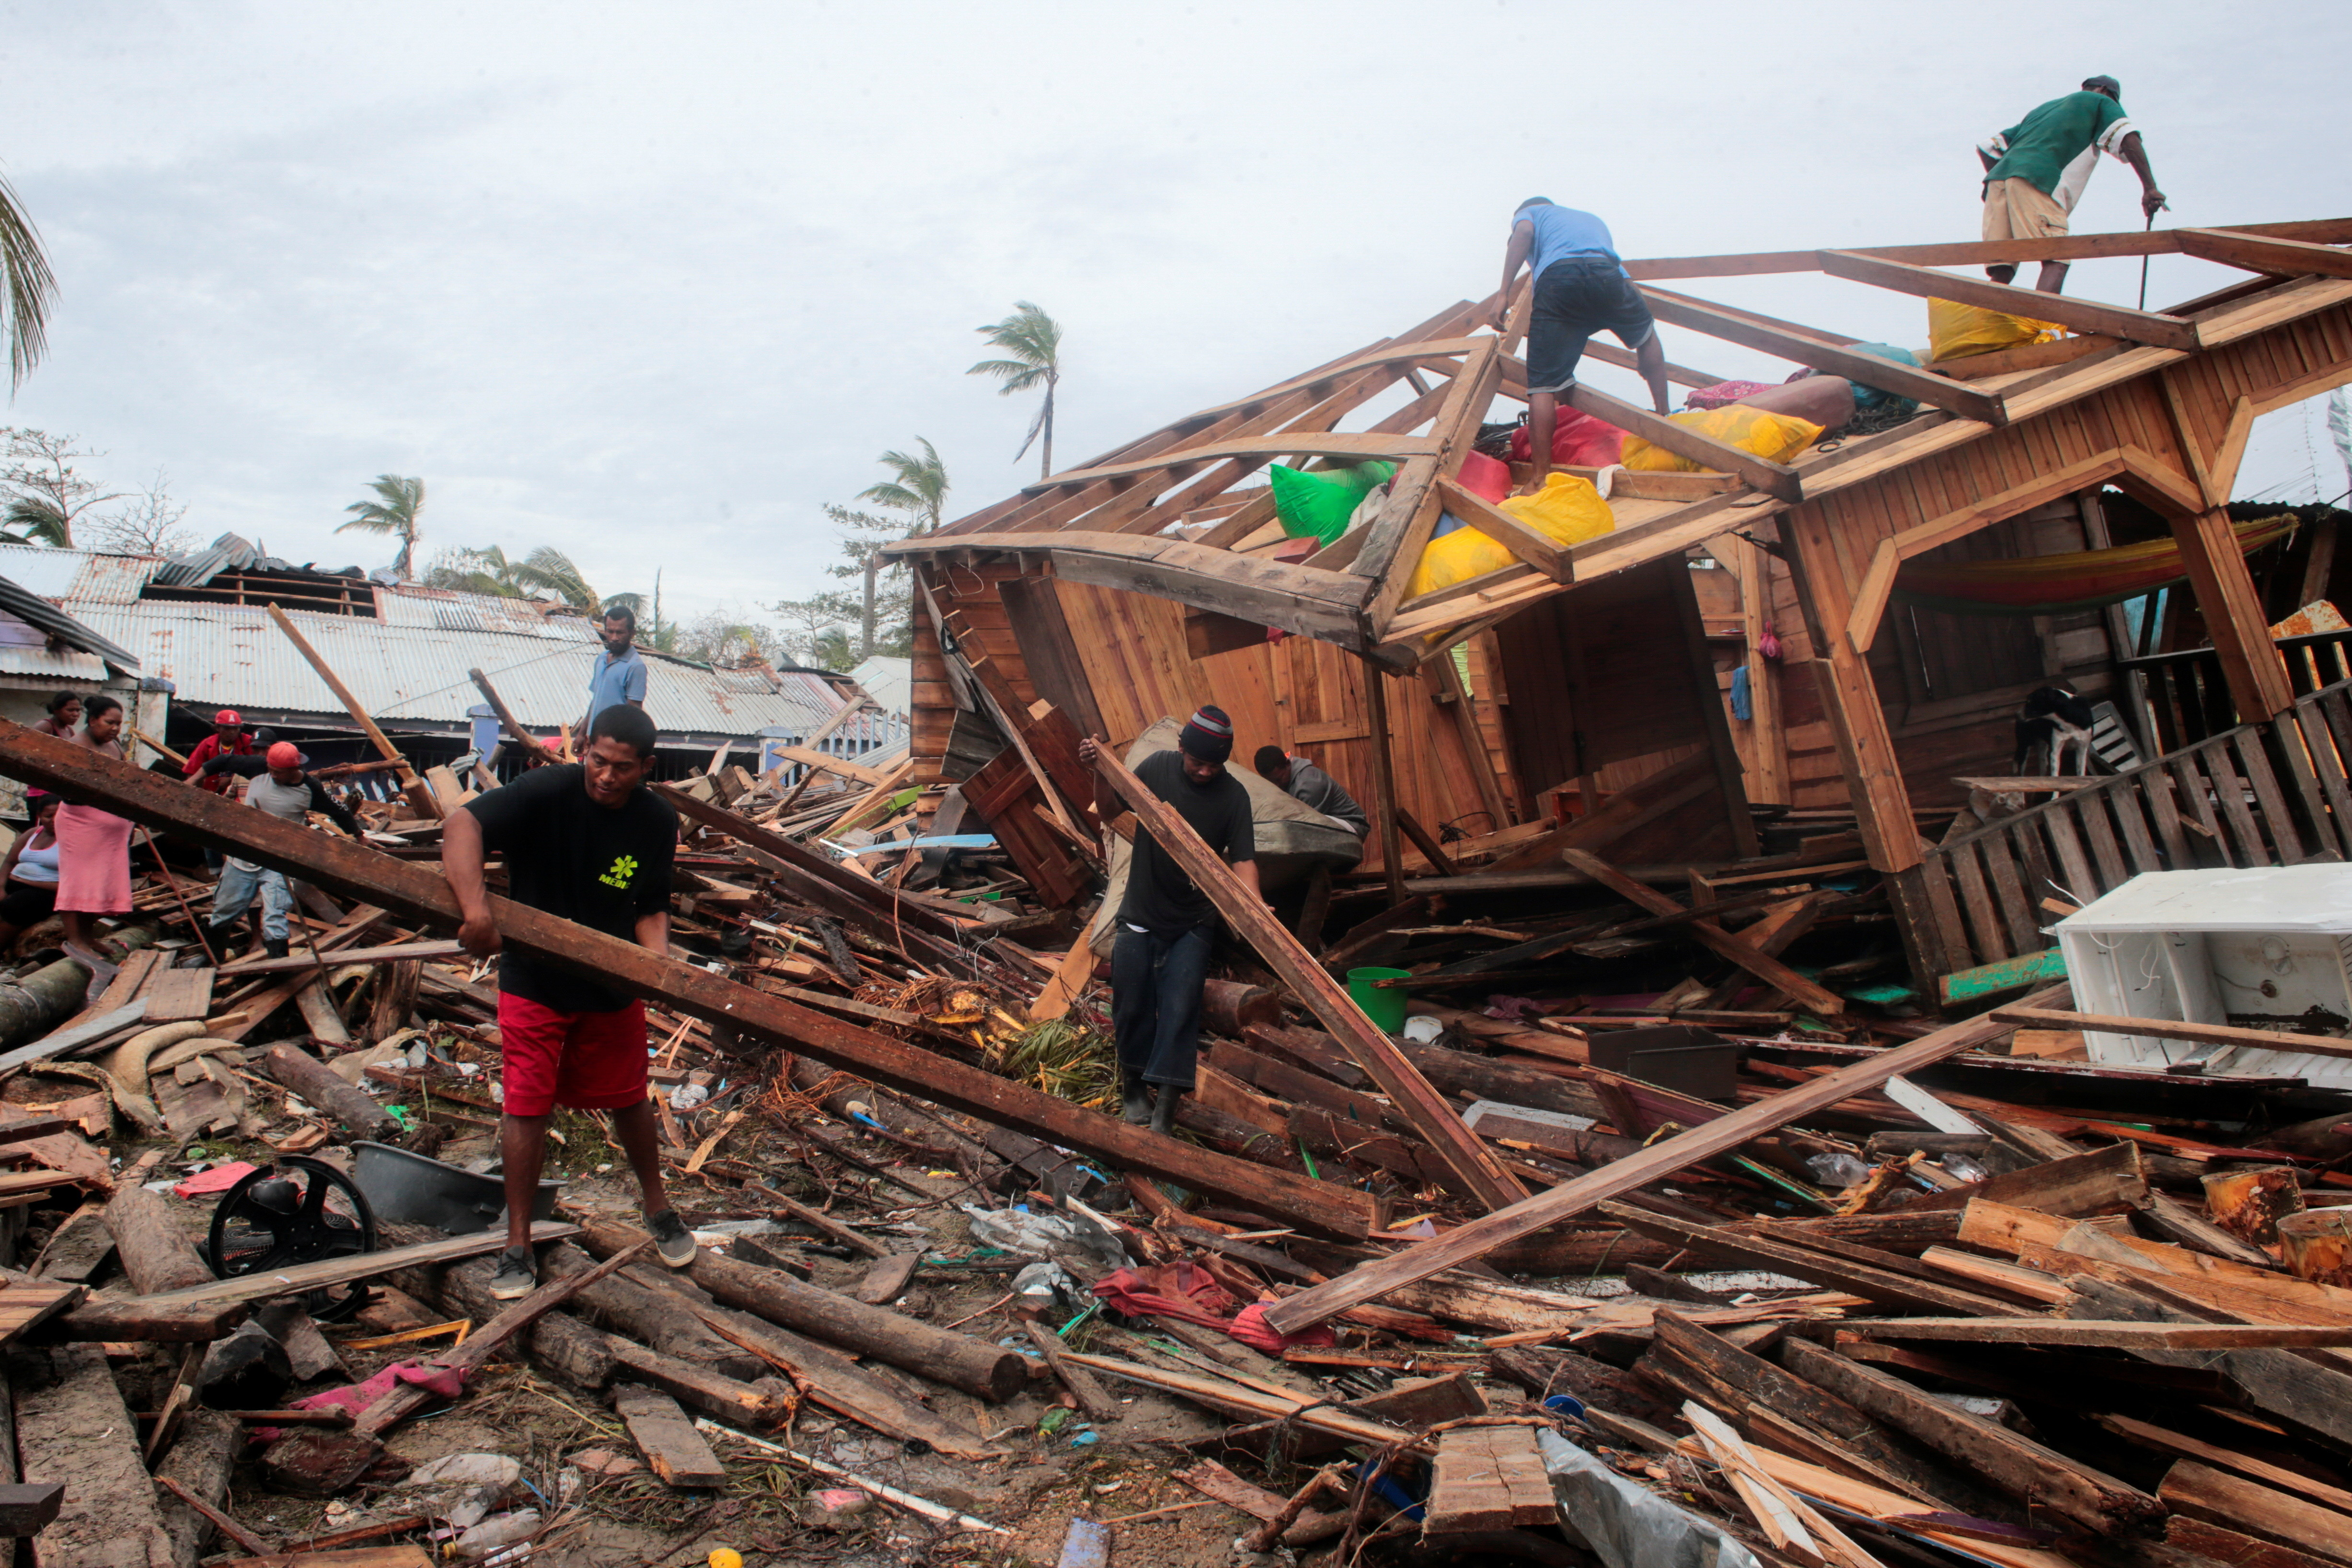 Residents remove debris from their houses destroyed by the passing of Hurricane Iota, in Puerto Cabezas, Nicaragua November 18, 2020.